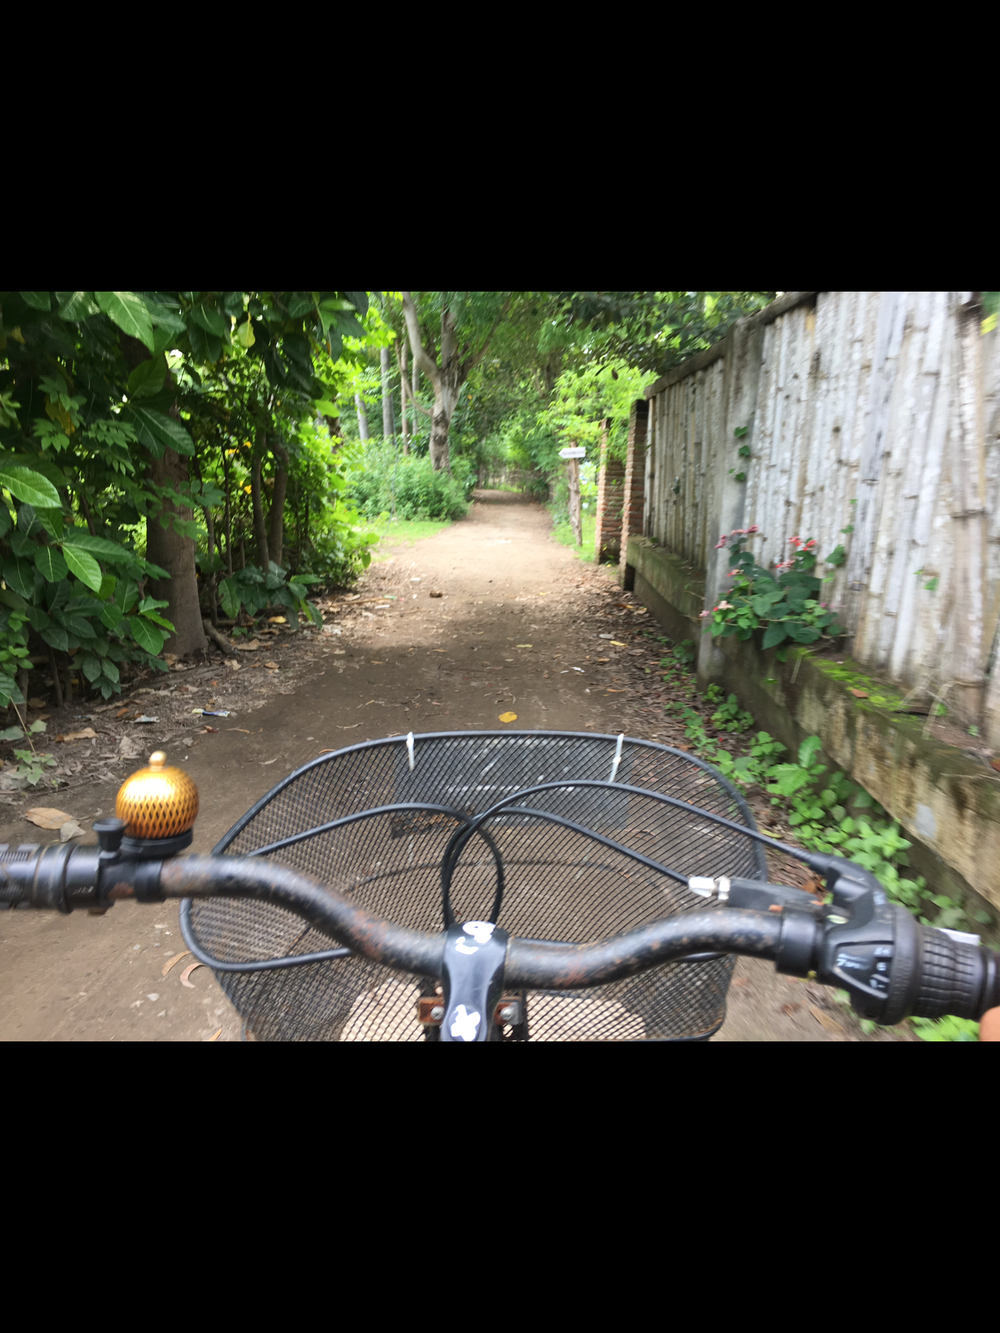 Burning man Feels while biking through the roads of a Gili Air! )'(